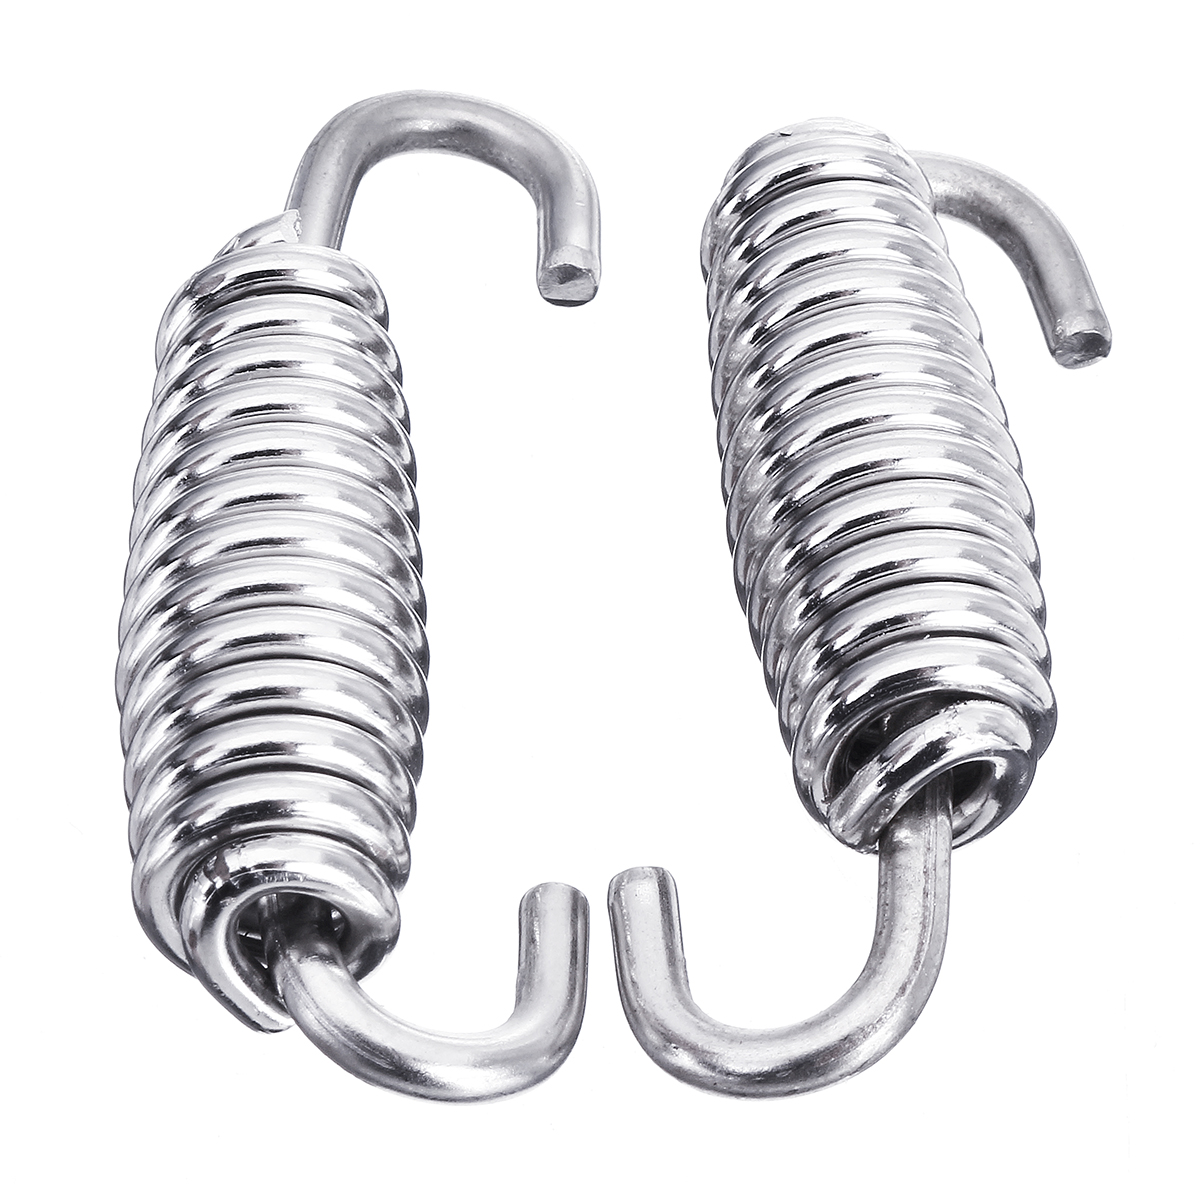 2pcs 400mm Stainless Steel Exhaust Muffler Springs